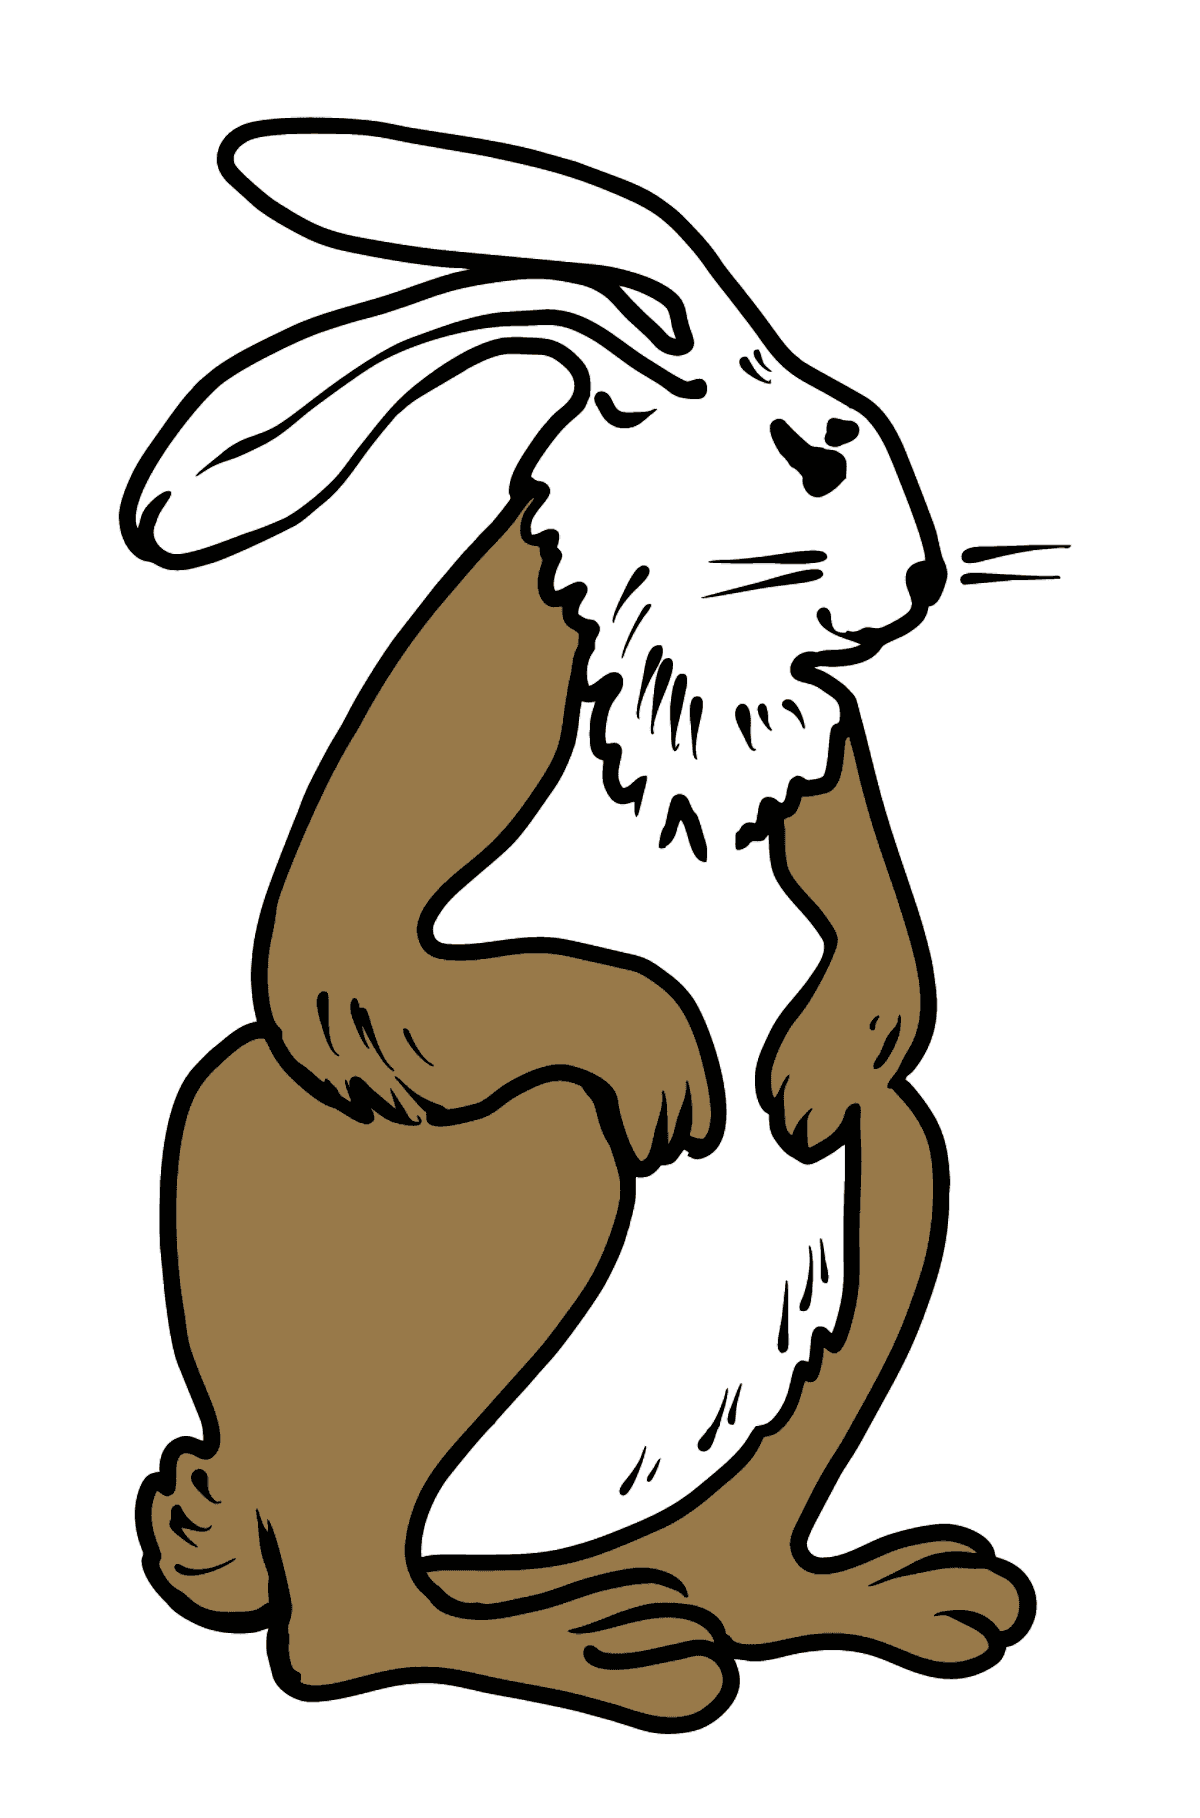 Rabbit coloring page - Coloring Pages for Kids